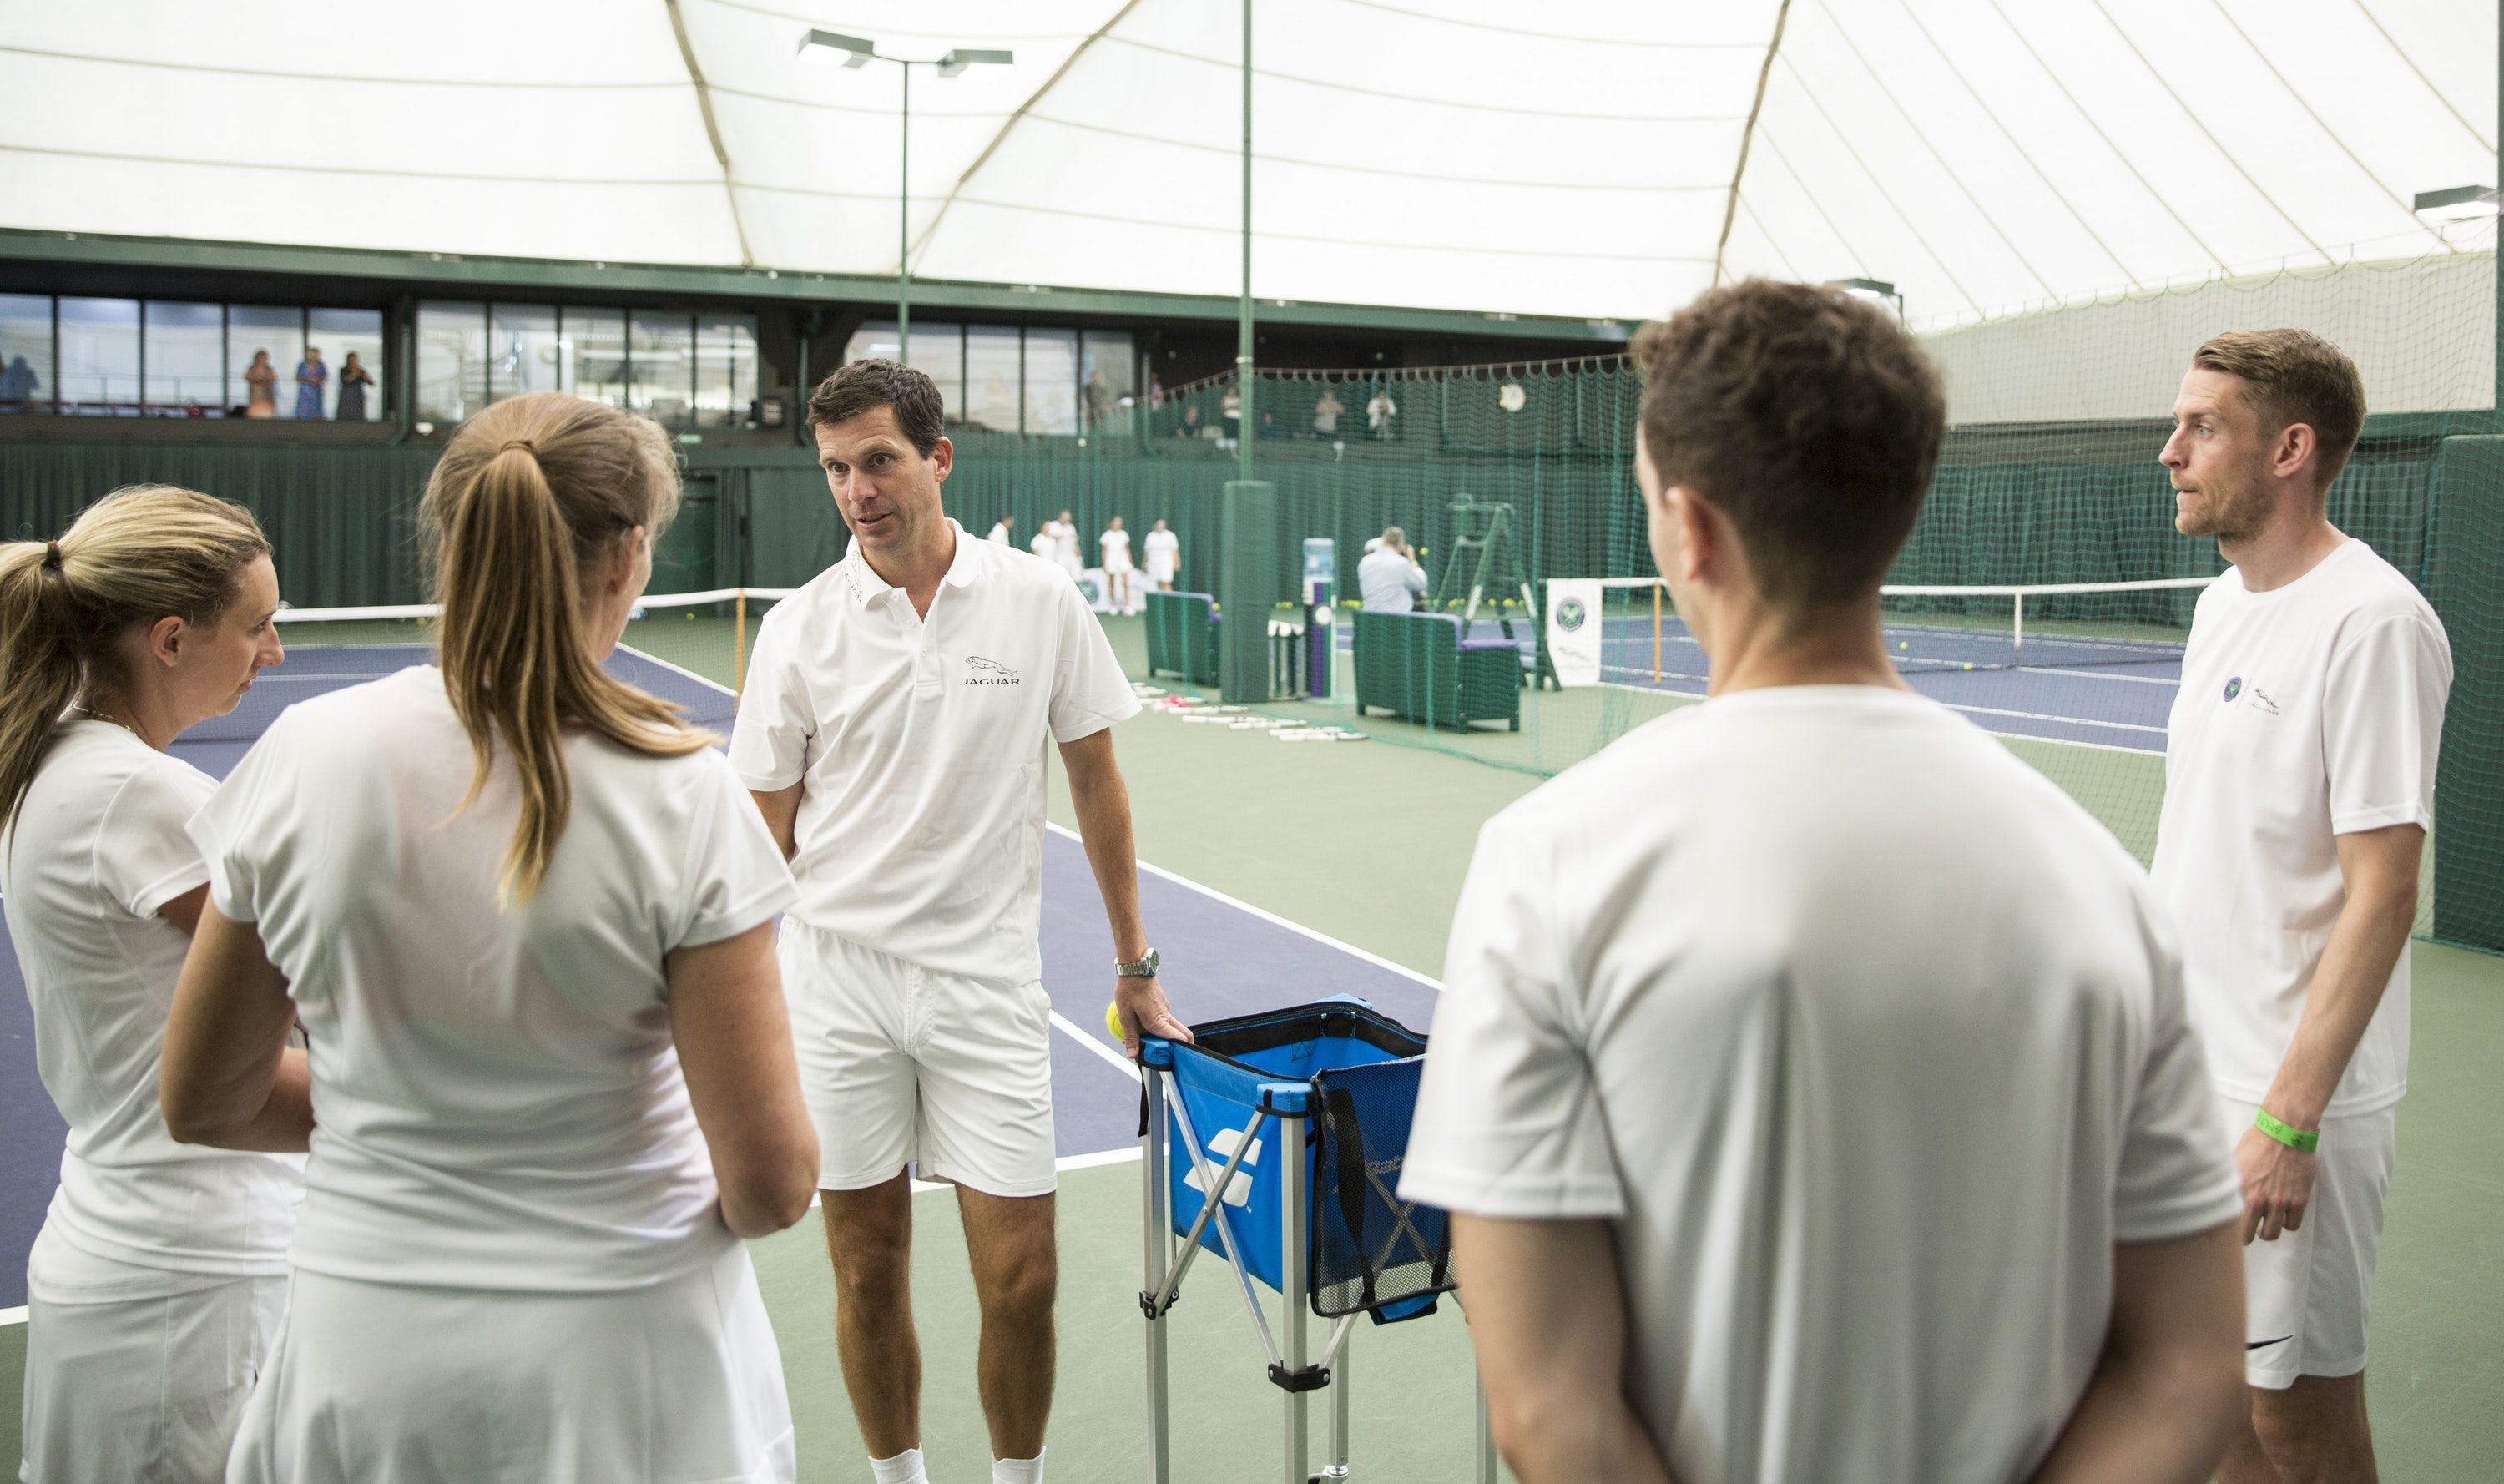 Tim Henman talking to tennis players